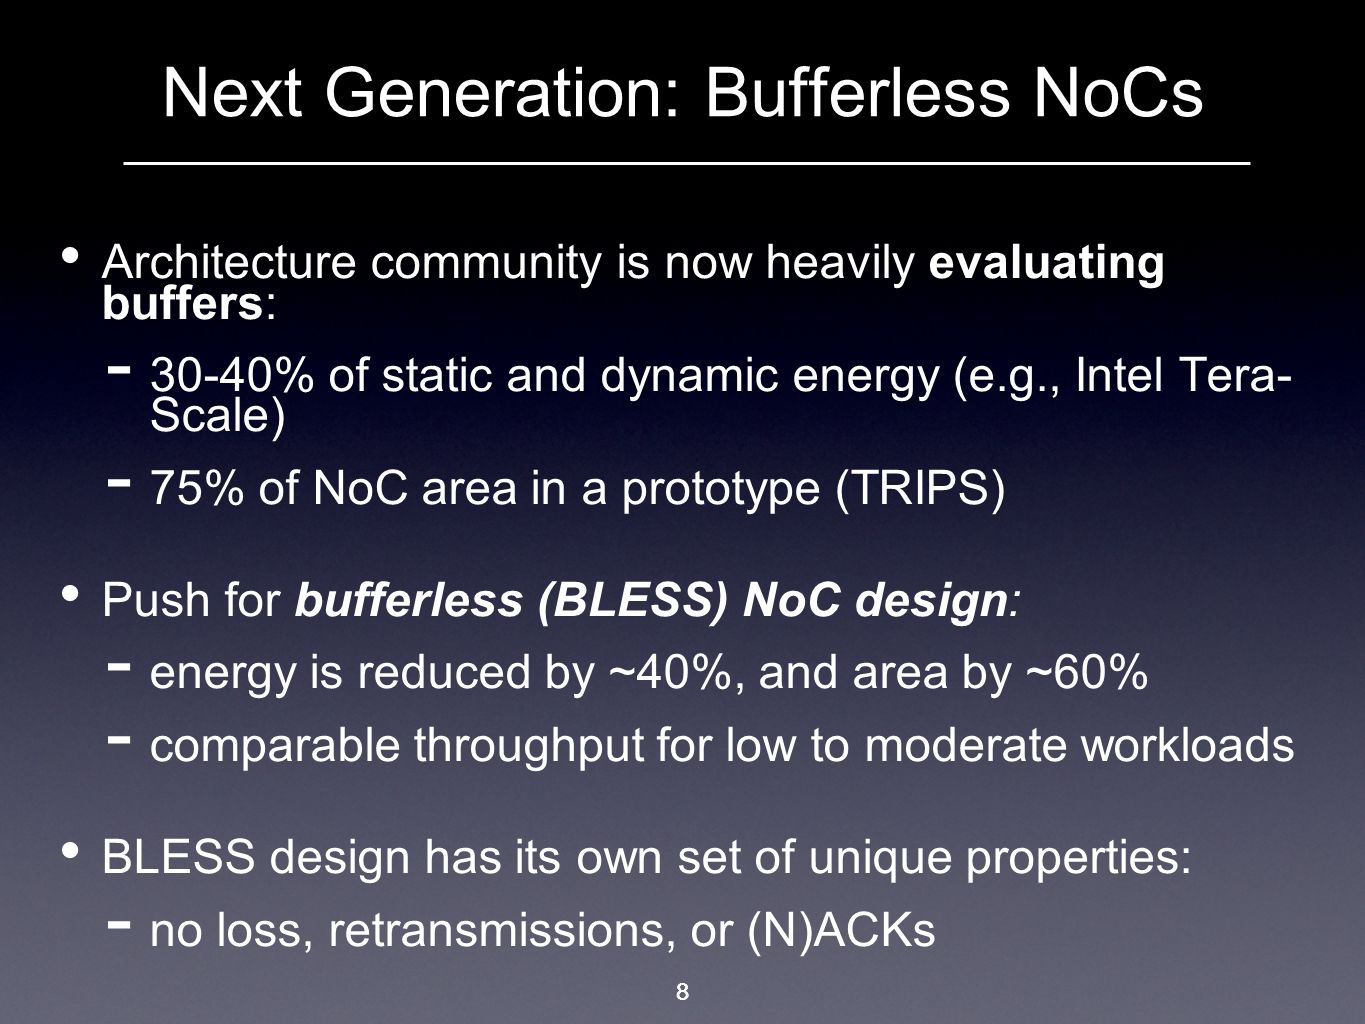 8 Next Generation: Bufferless NoCs Architecture community is now heavily evaluating buffers: 30-40% of static and dynamic energy (e.g., Intel Tera- Sc